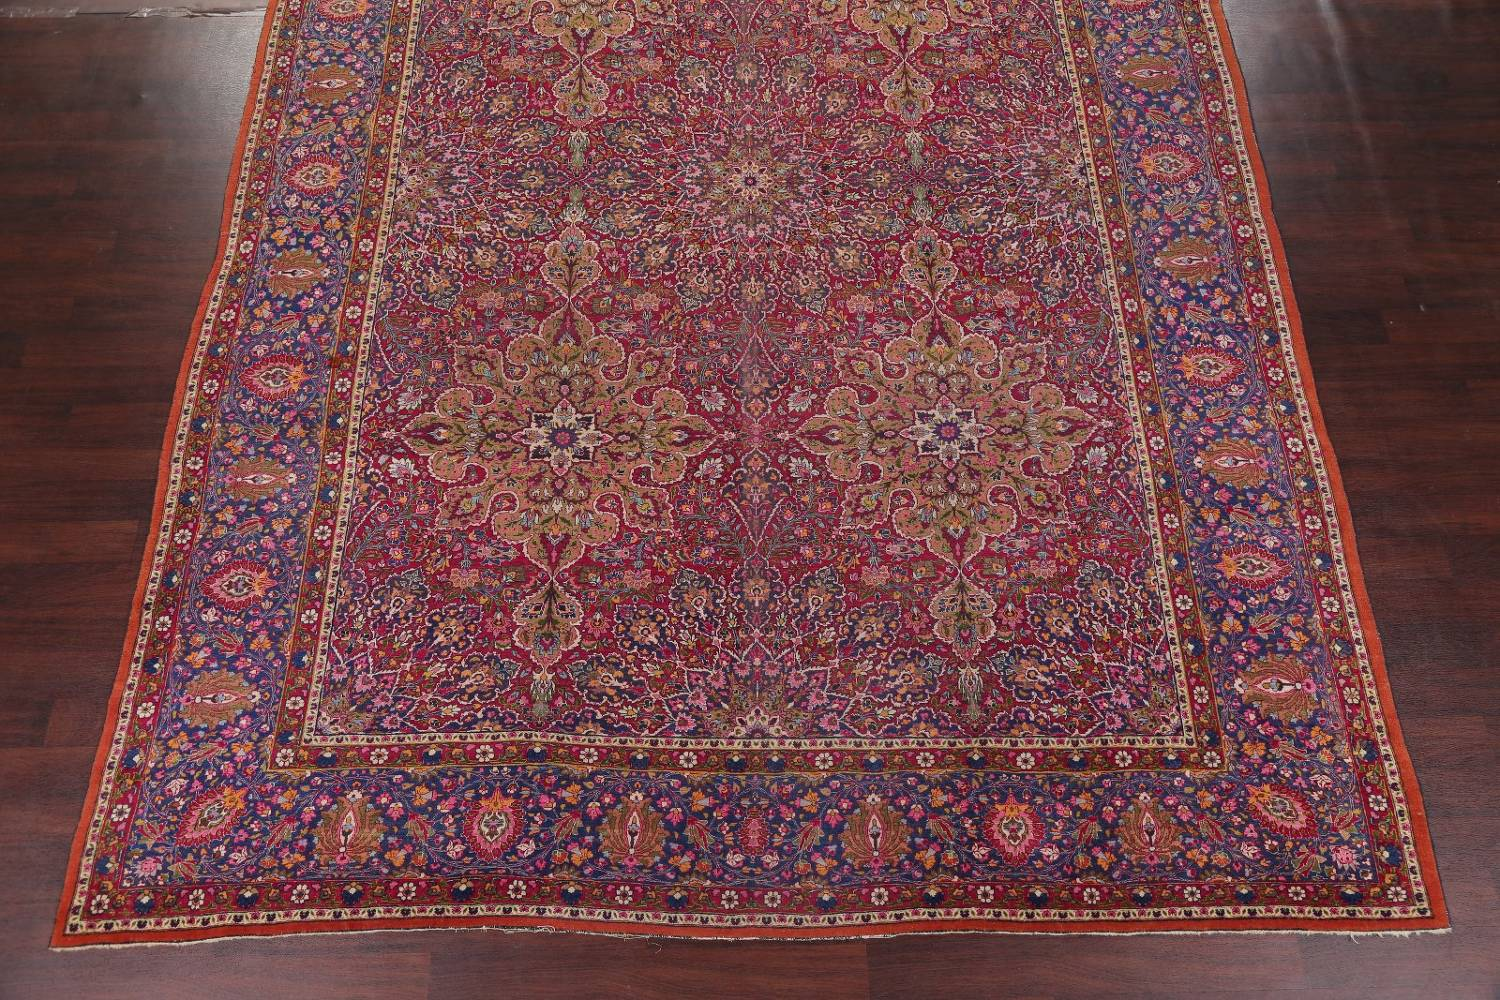 All-Over Floral 11x16 Mashad Persian Area Rug image 5